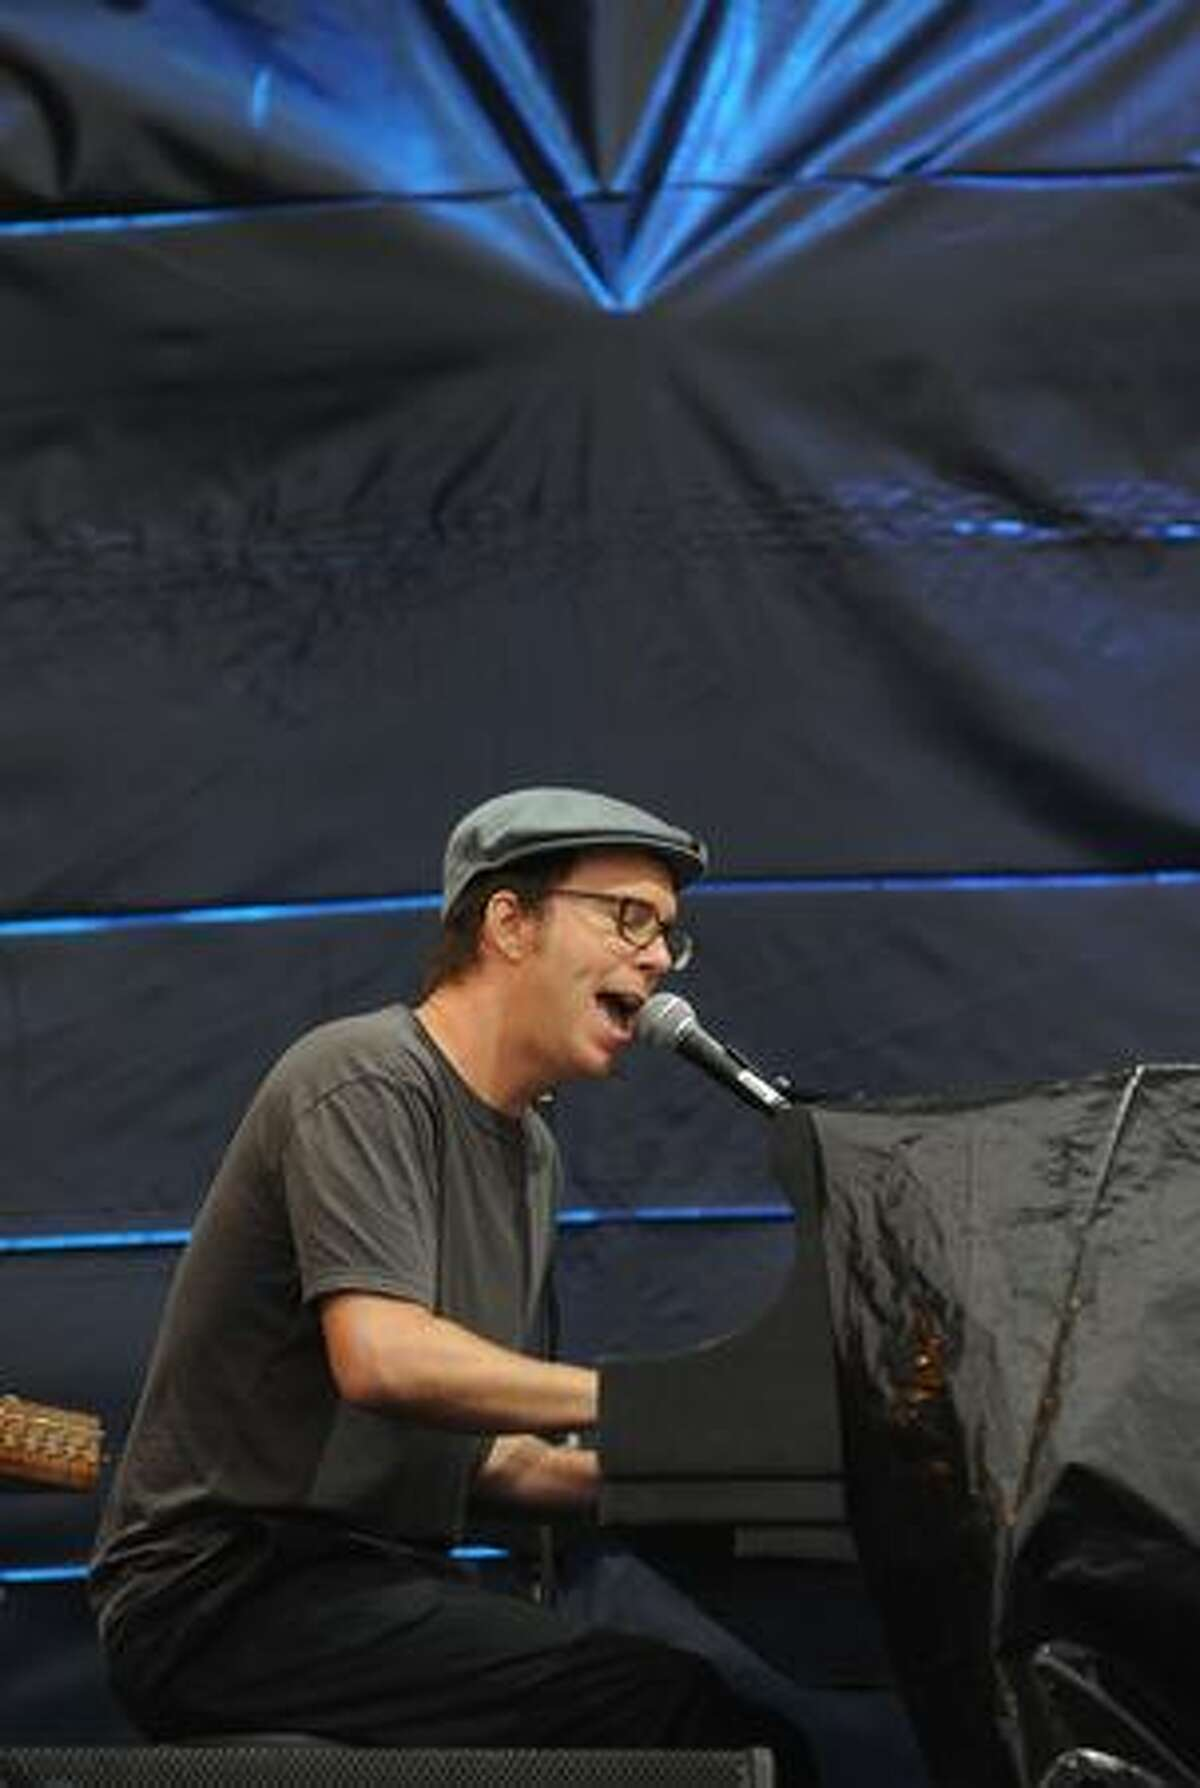 Ben Folds performs during the 2009 Lollapalooza Music Festival at Grant Park on Friday in Chicago, Illinois.